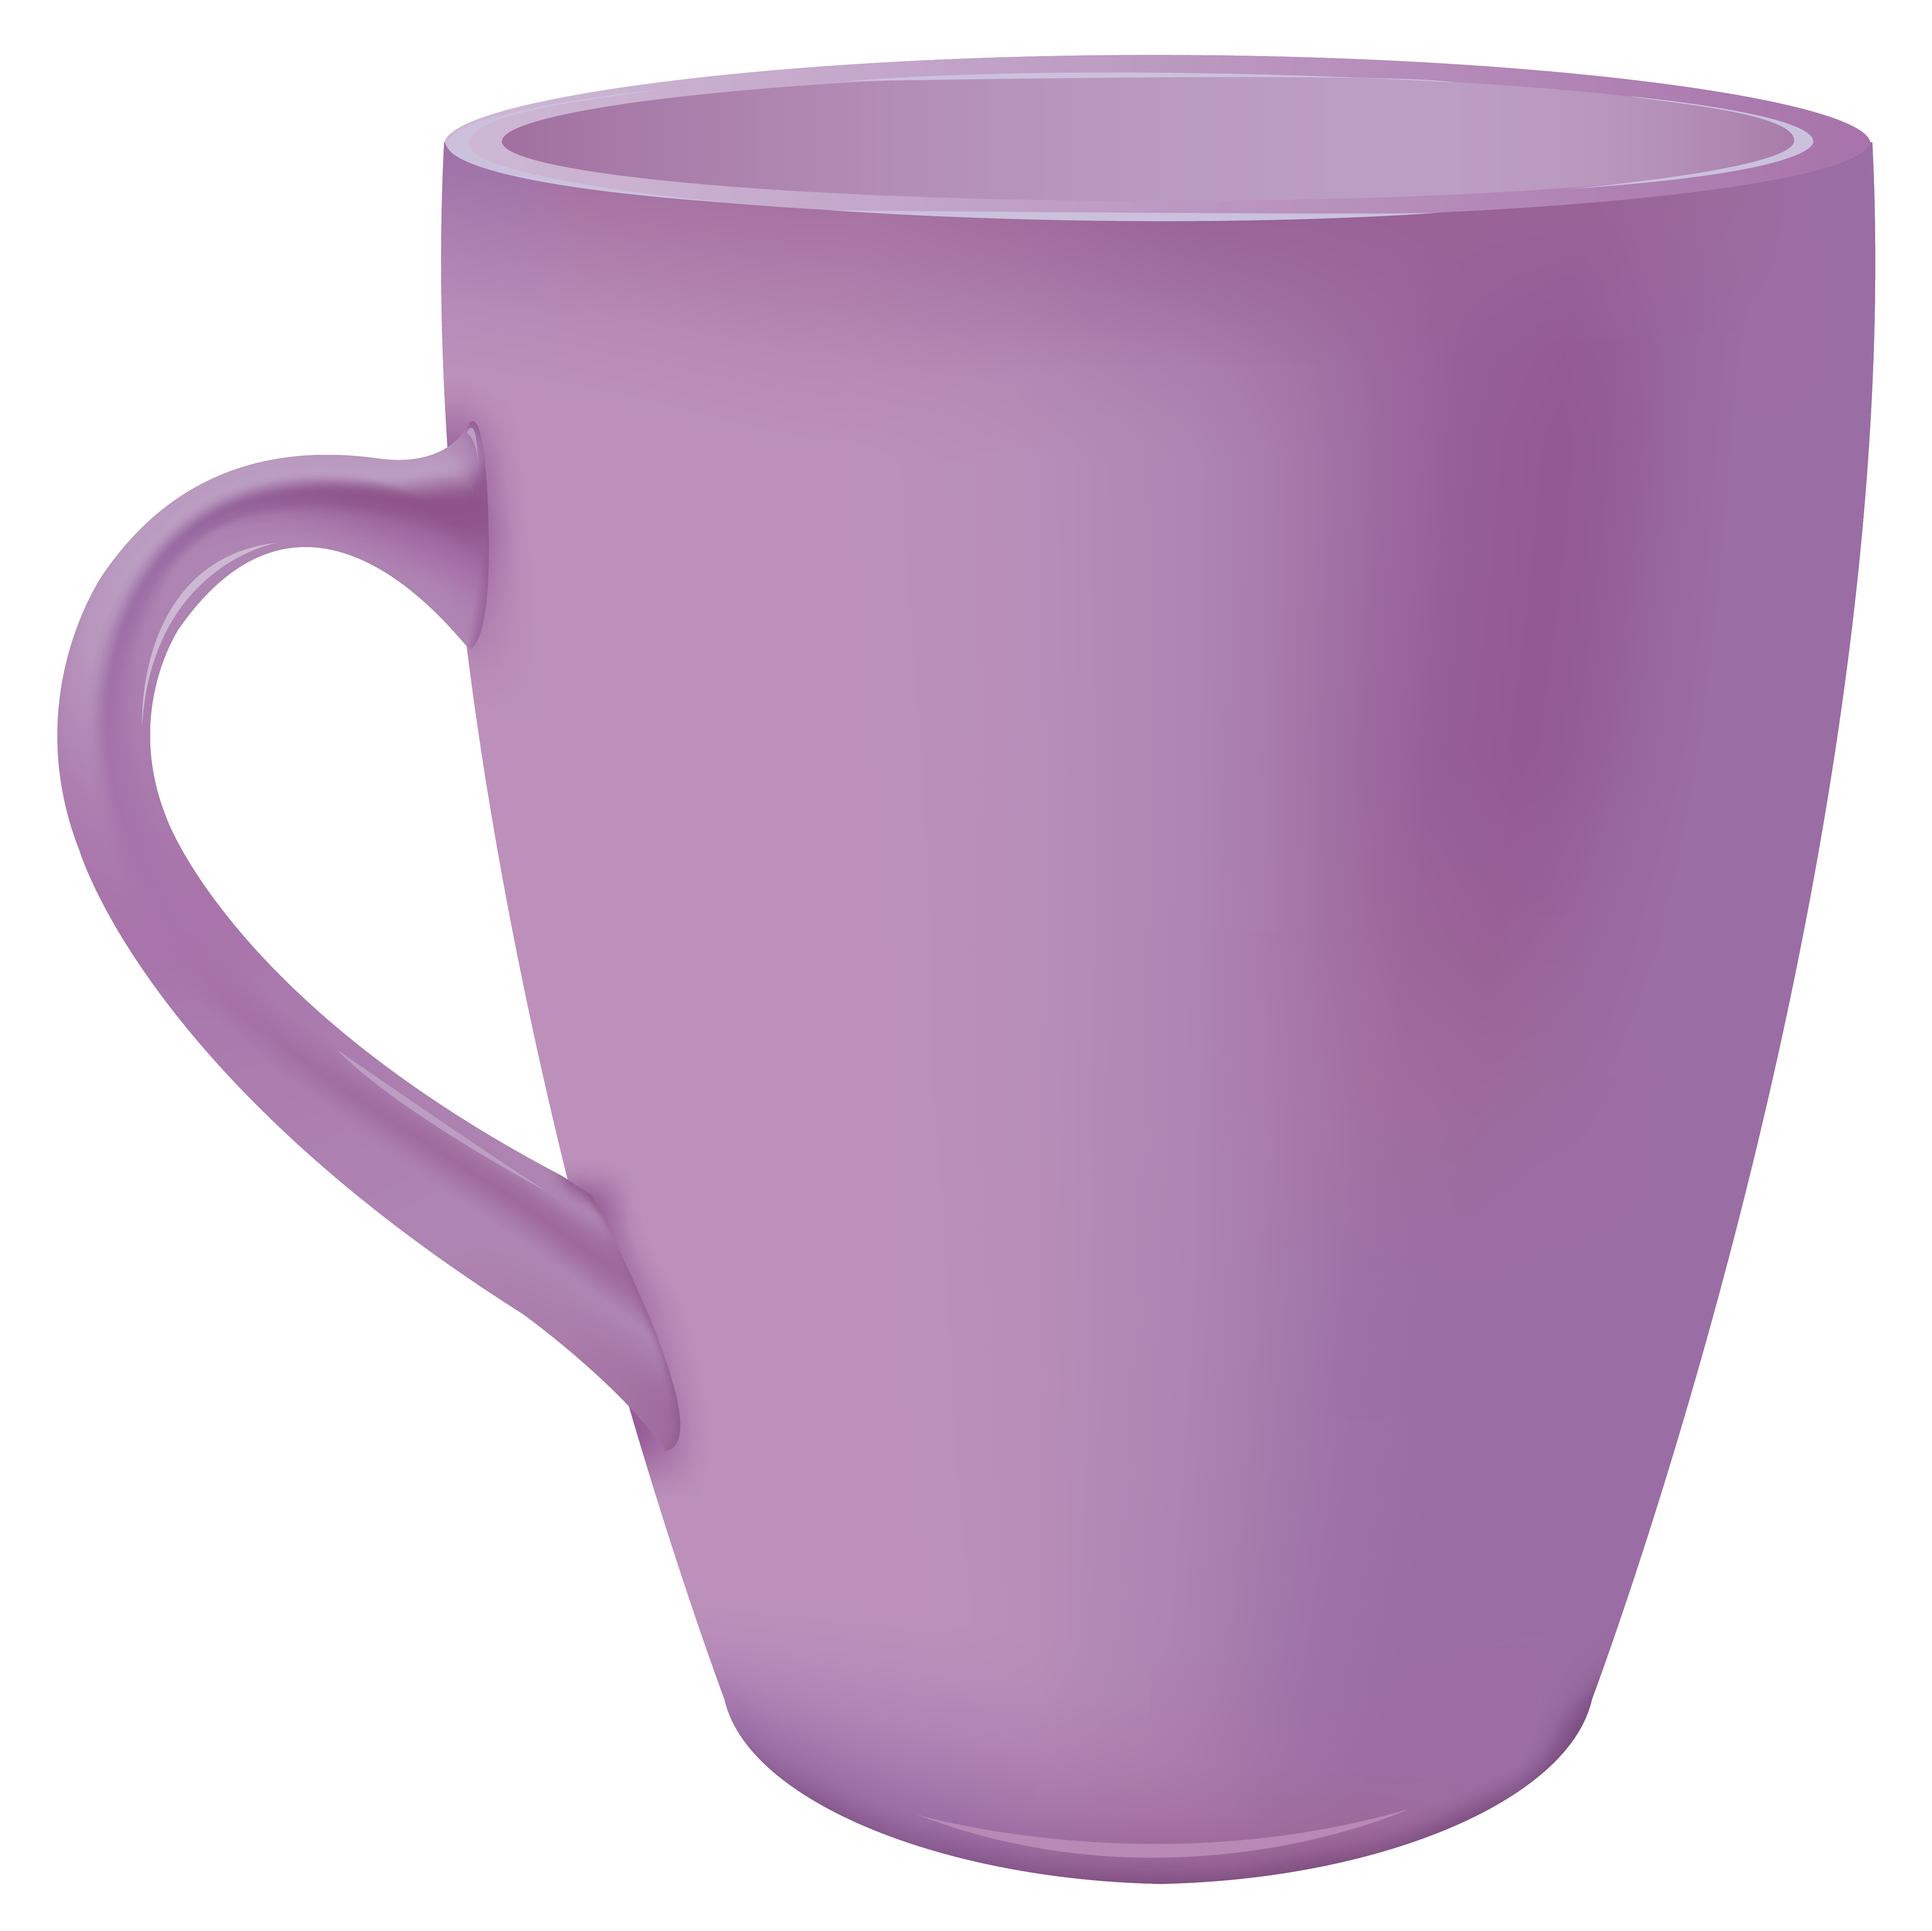 Mug clipart hot coco. Violet cup png best